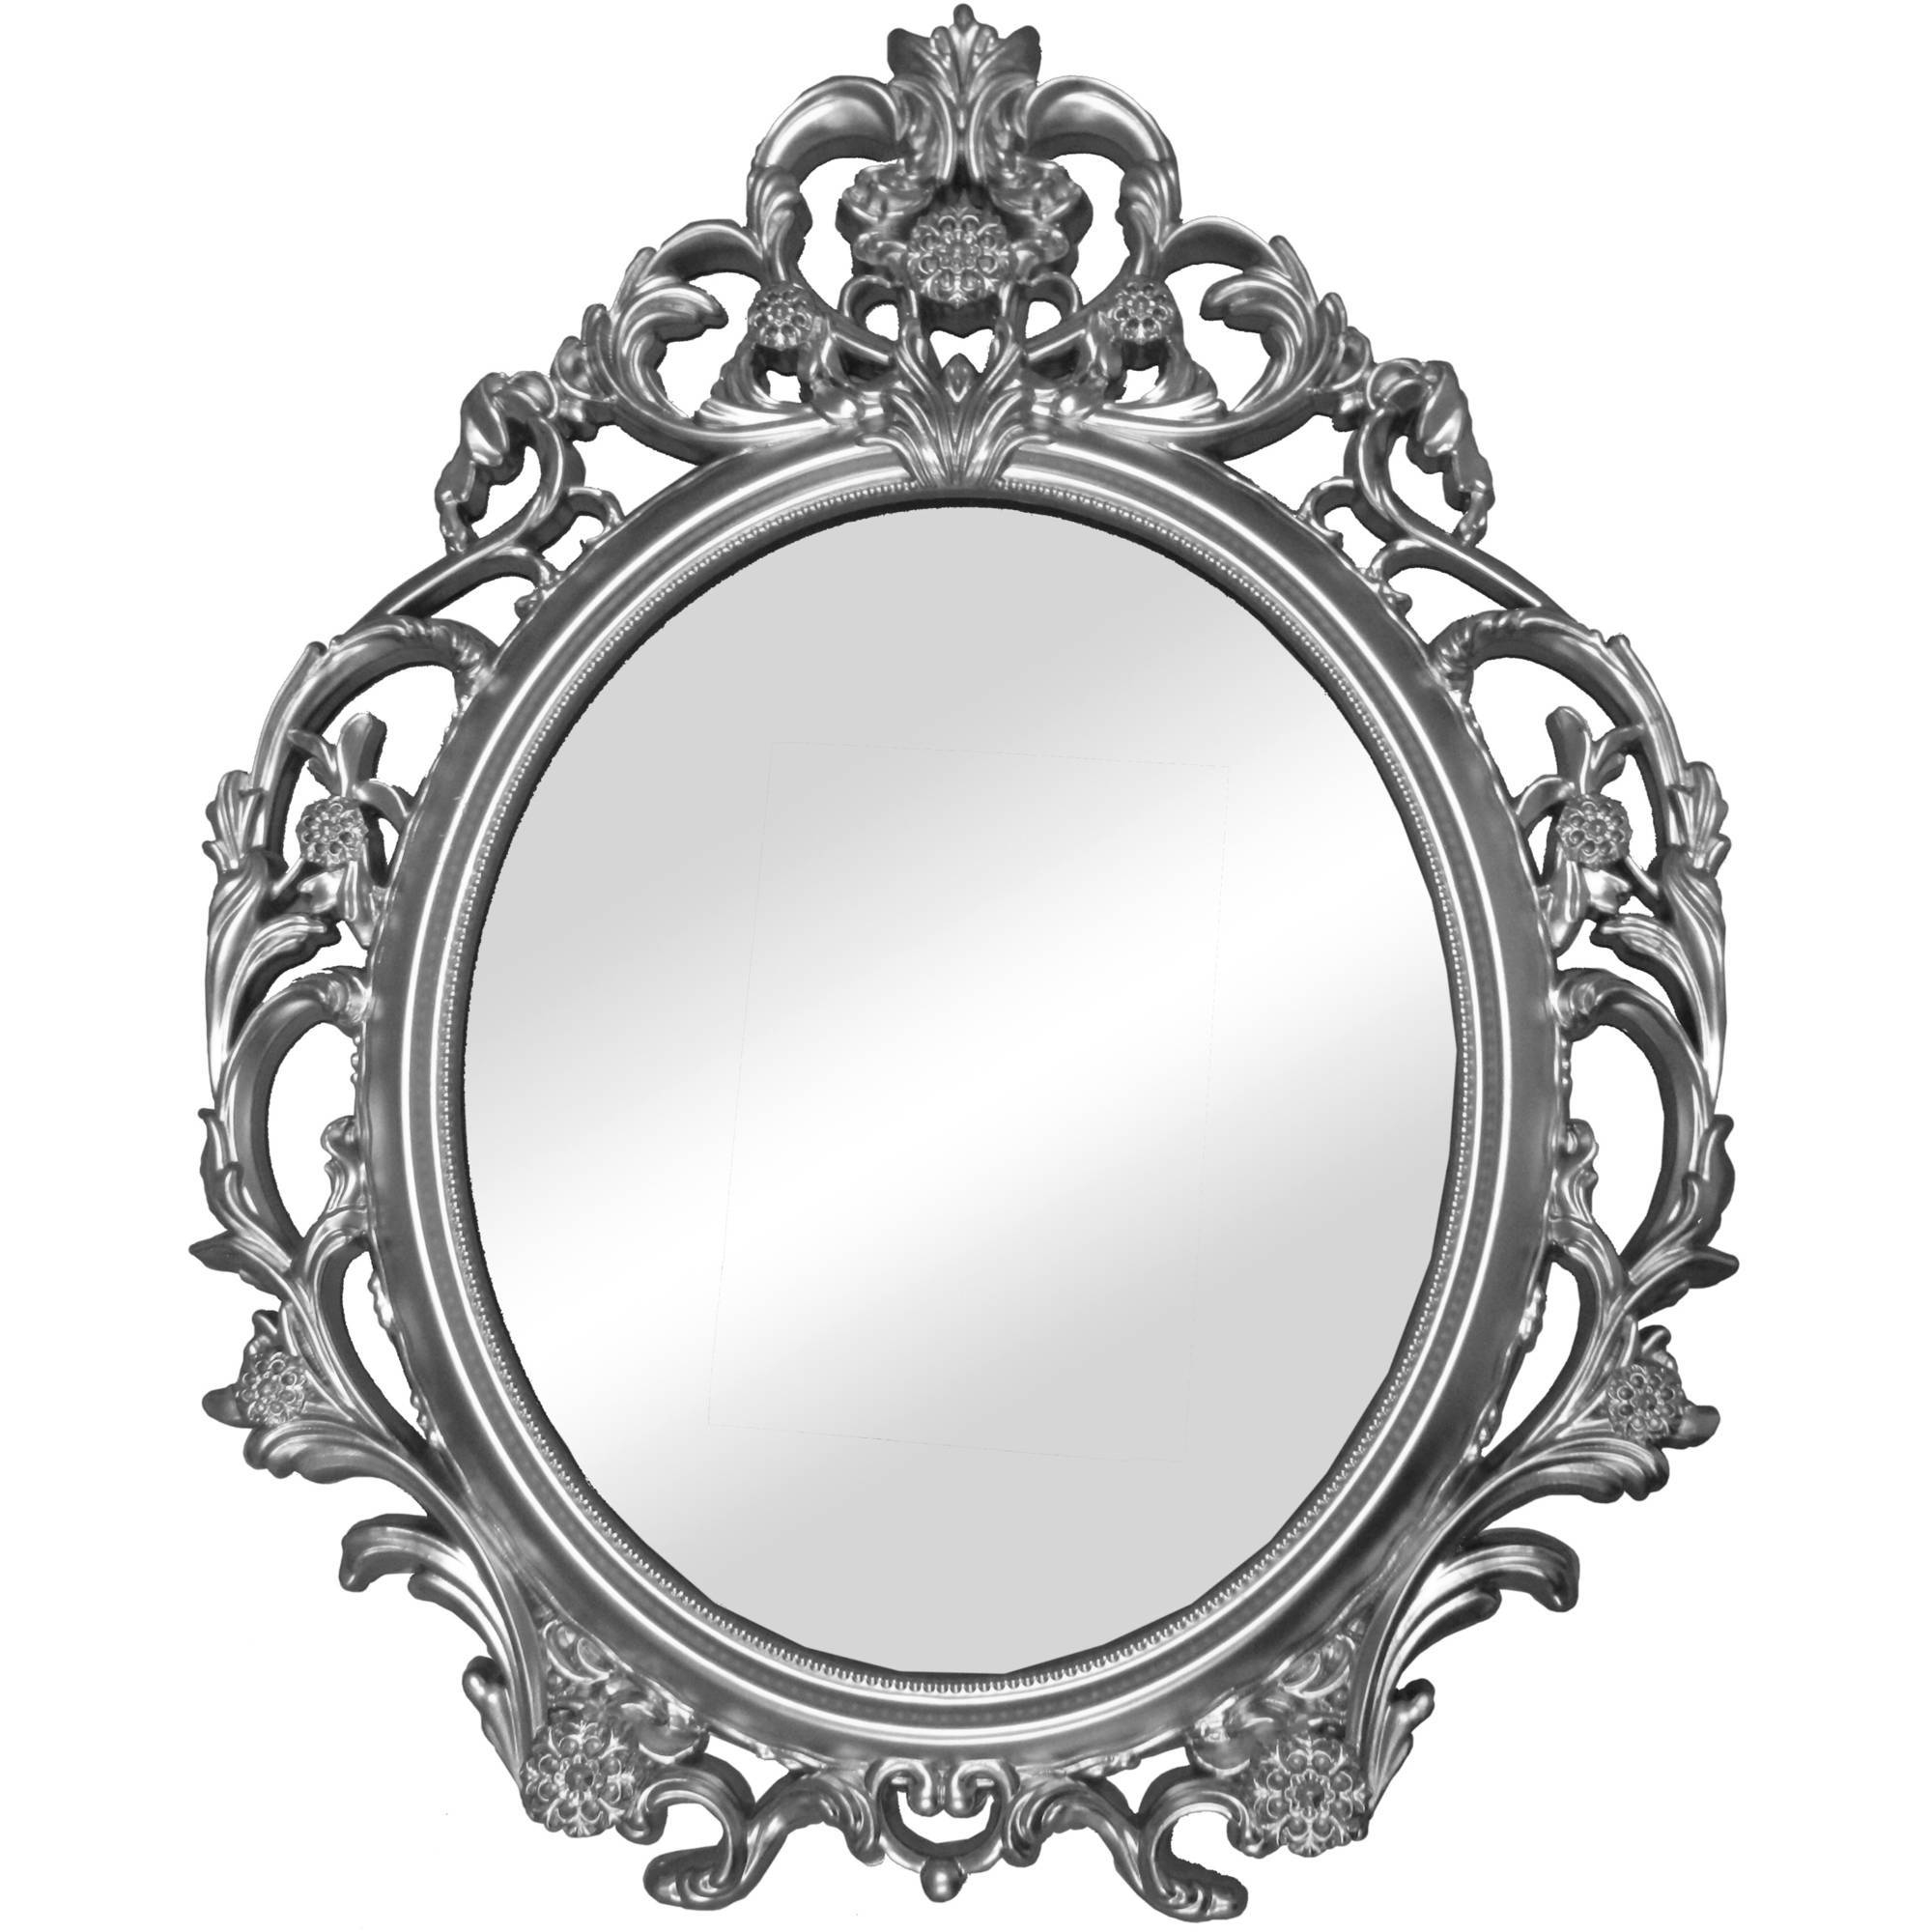 2000x2000 Mirror Drawing Gothic For Free Download